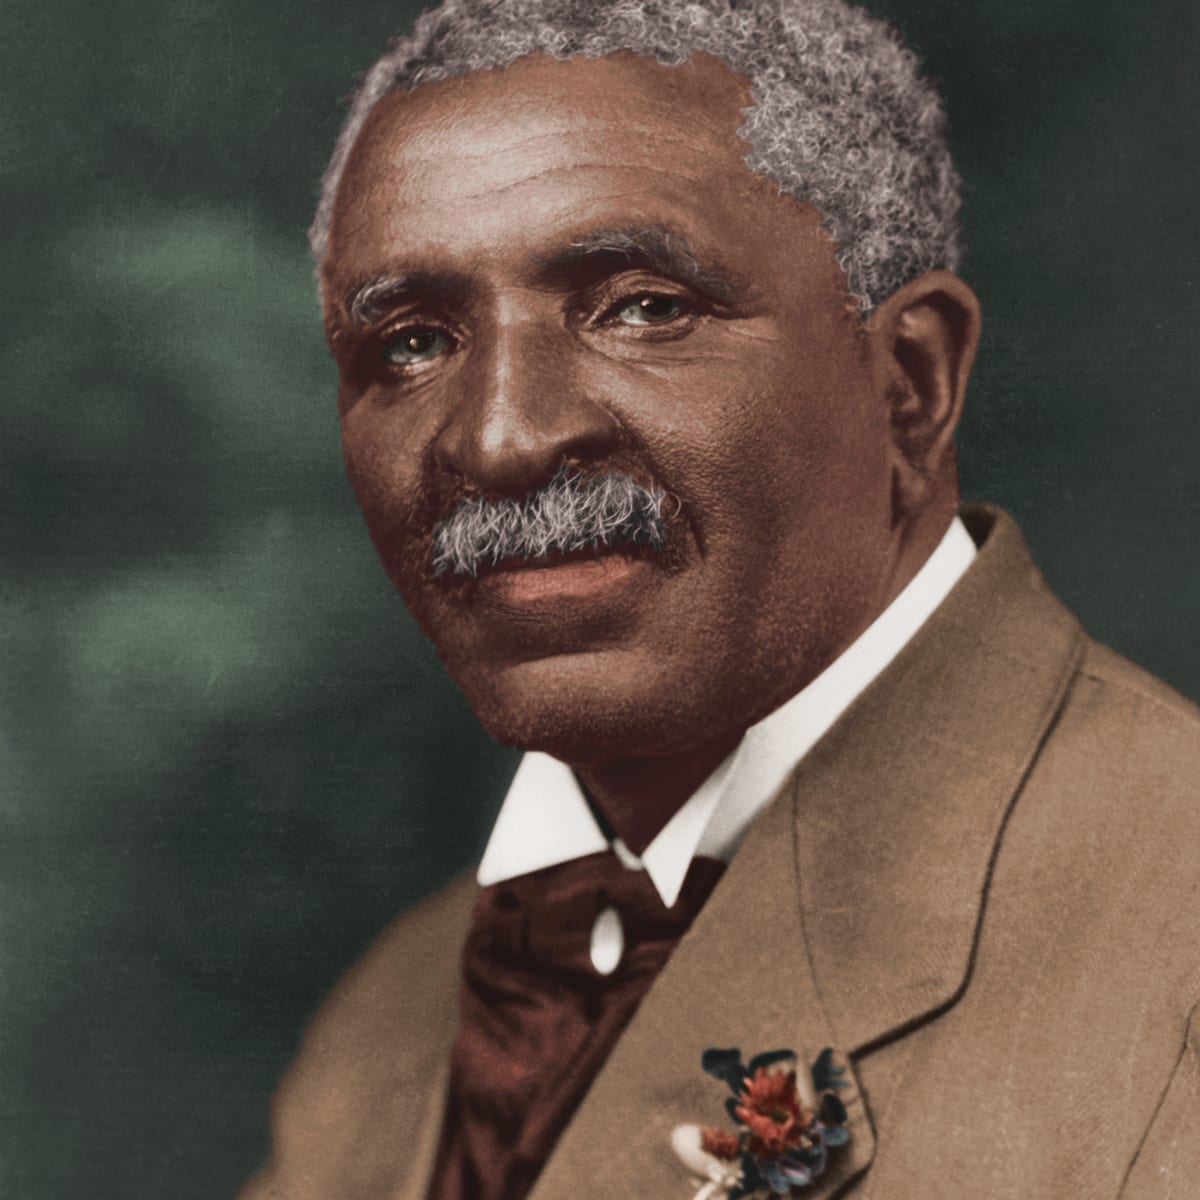 George Washington Carver: Biography, Inventions, Facts - HISTORY